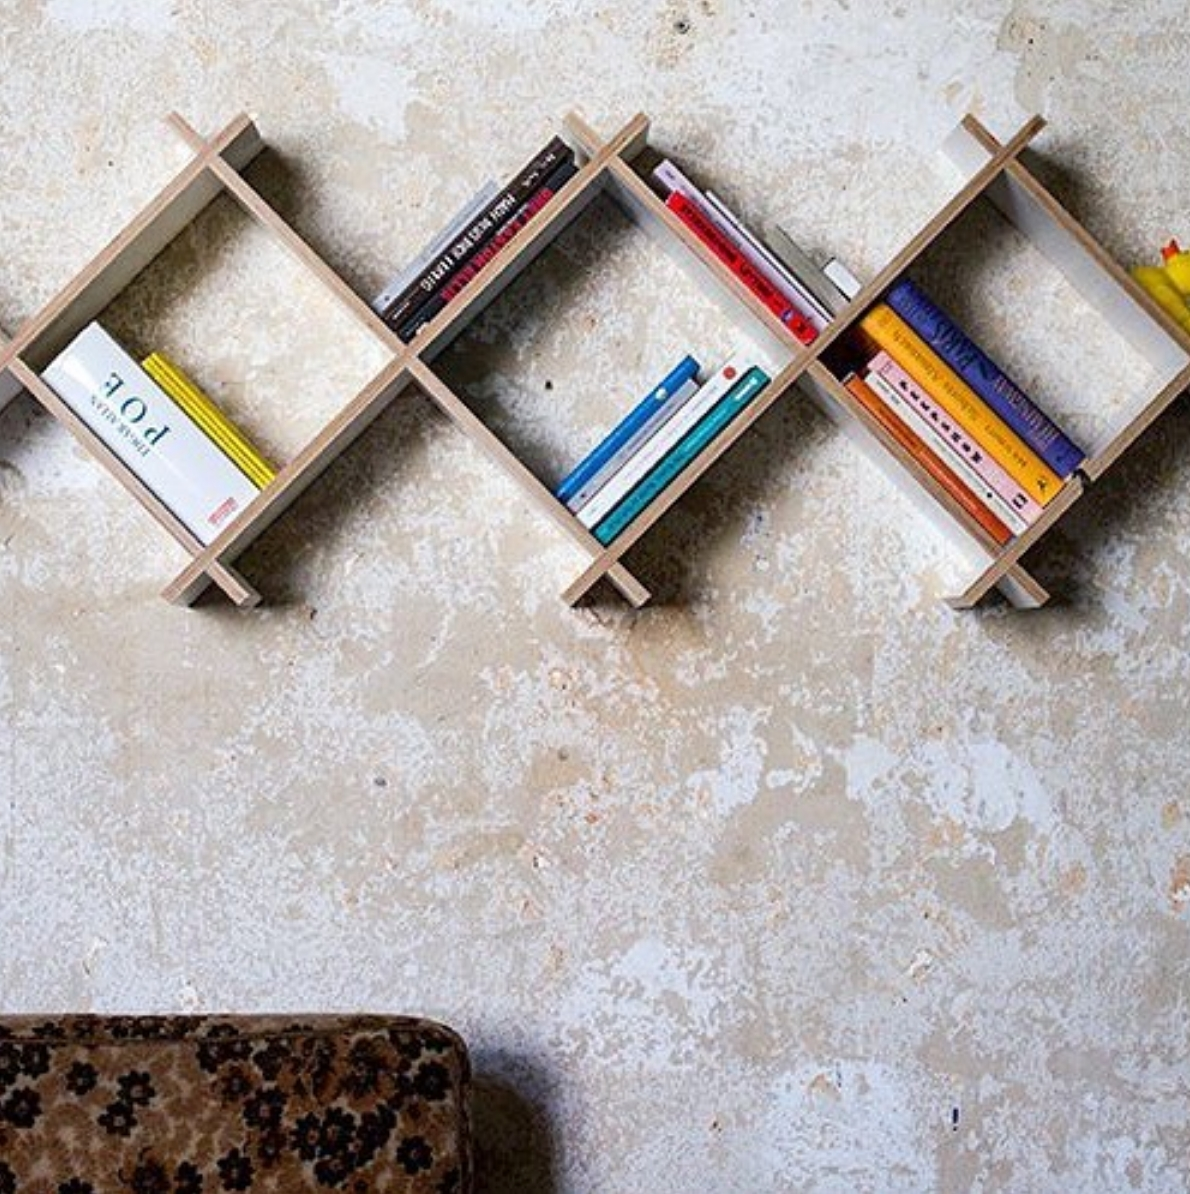 X, XX or XXX – mein modulares Bücherregal! #interior #design #bookshelf #nomadicfurniture #homesweethome